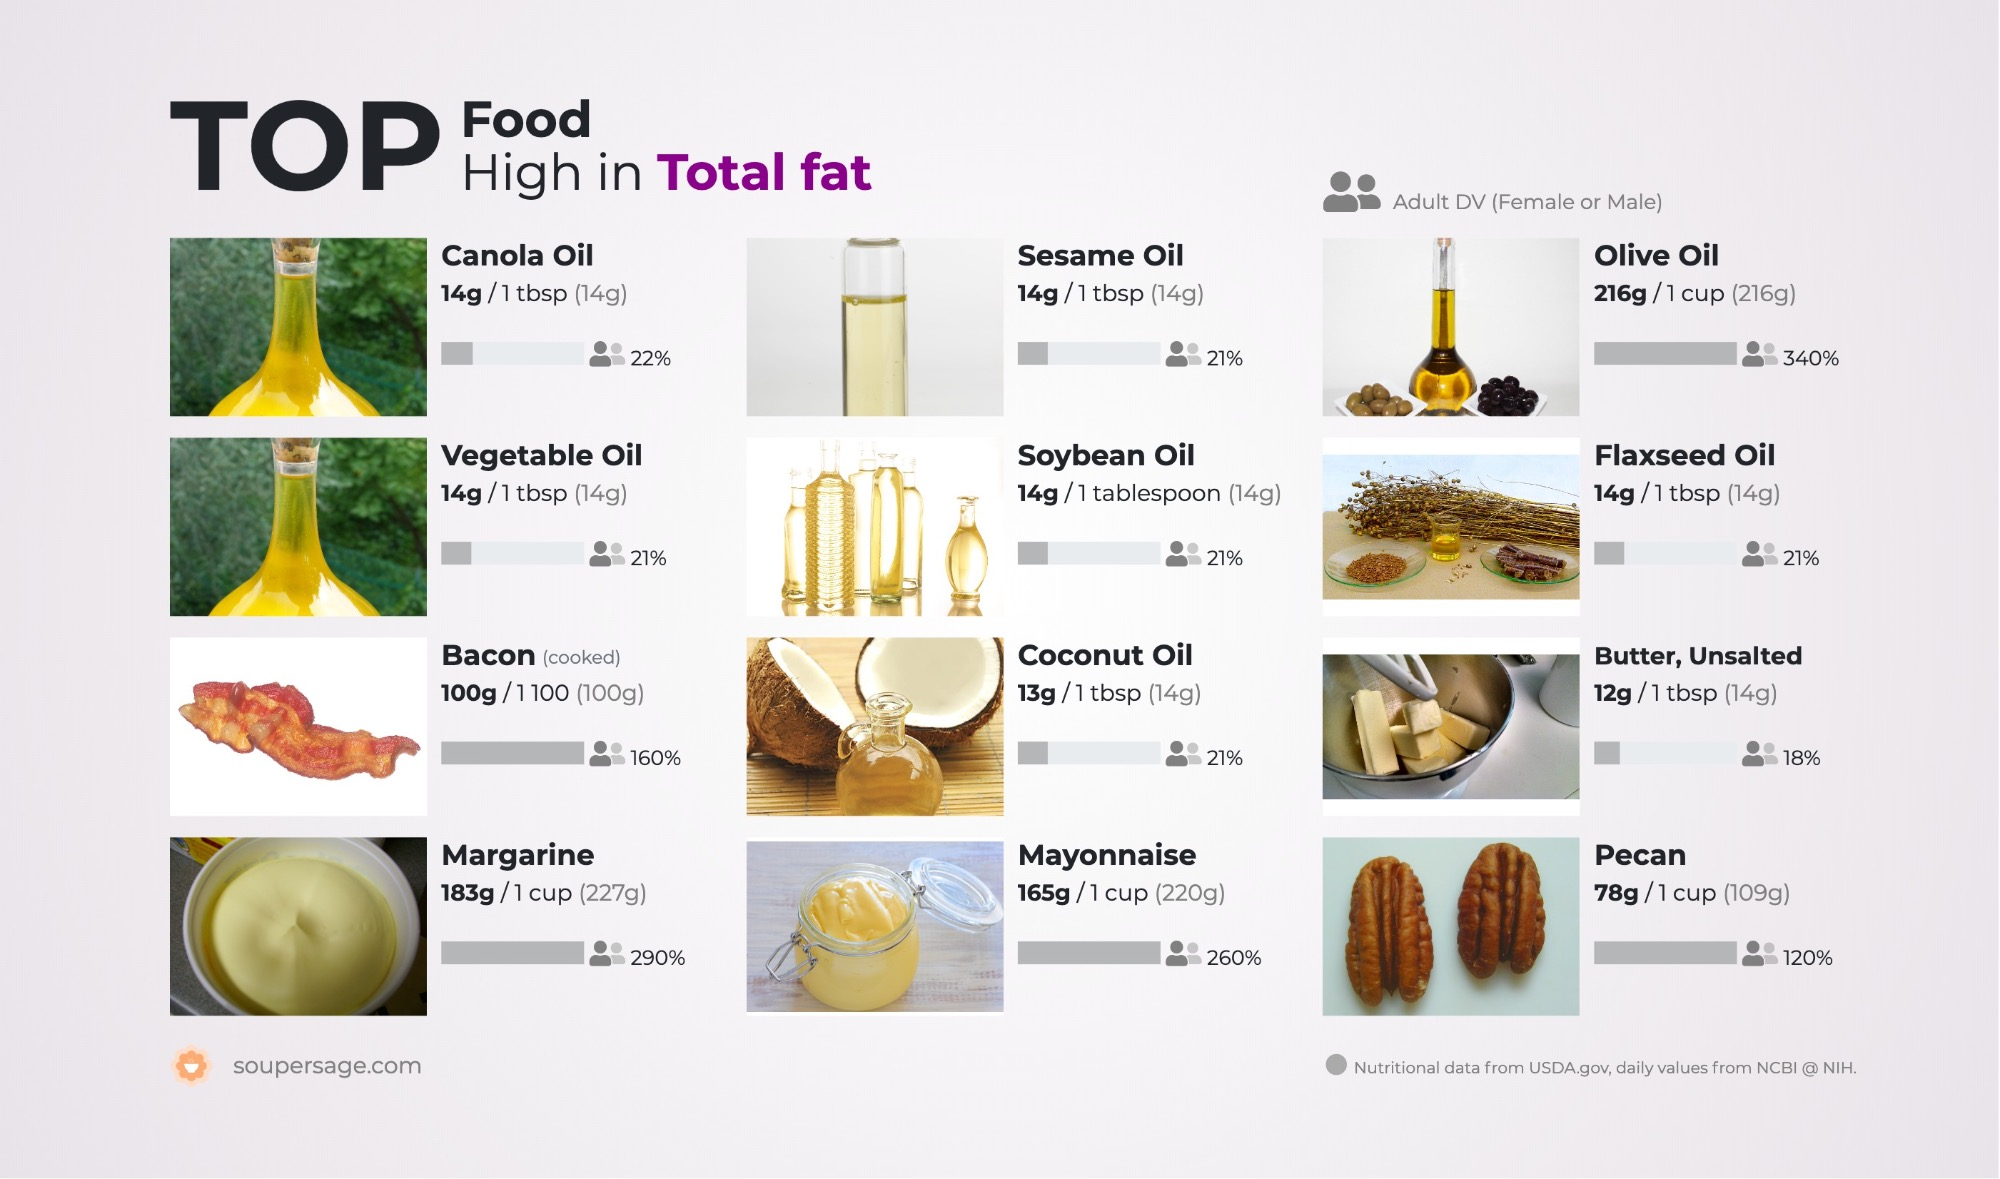 image of Top Food High in Total fat